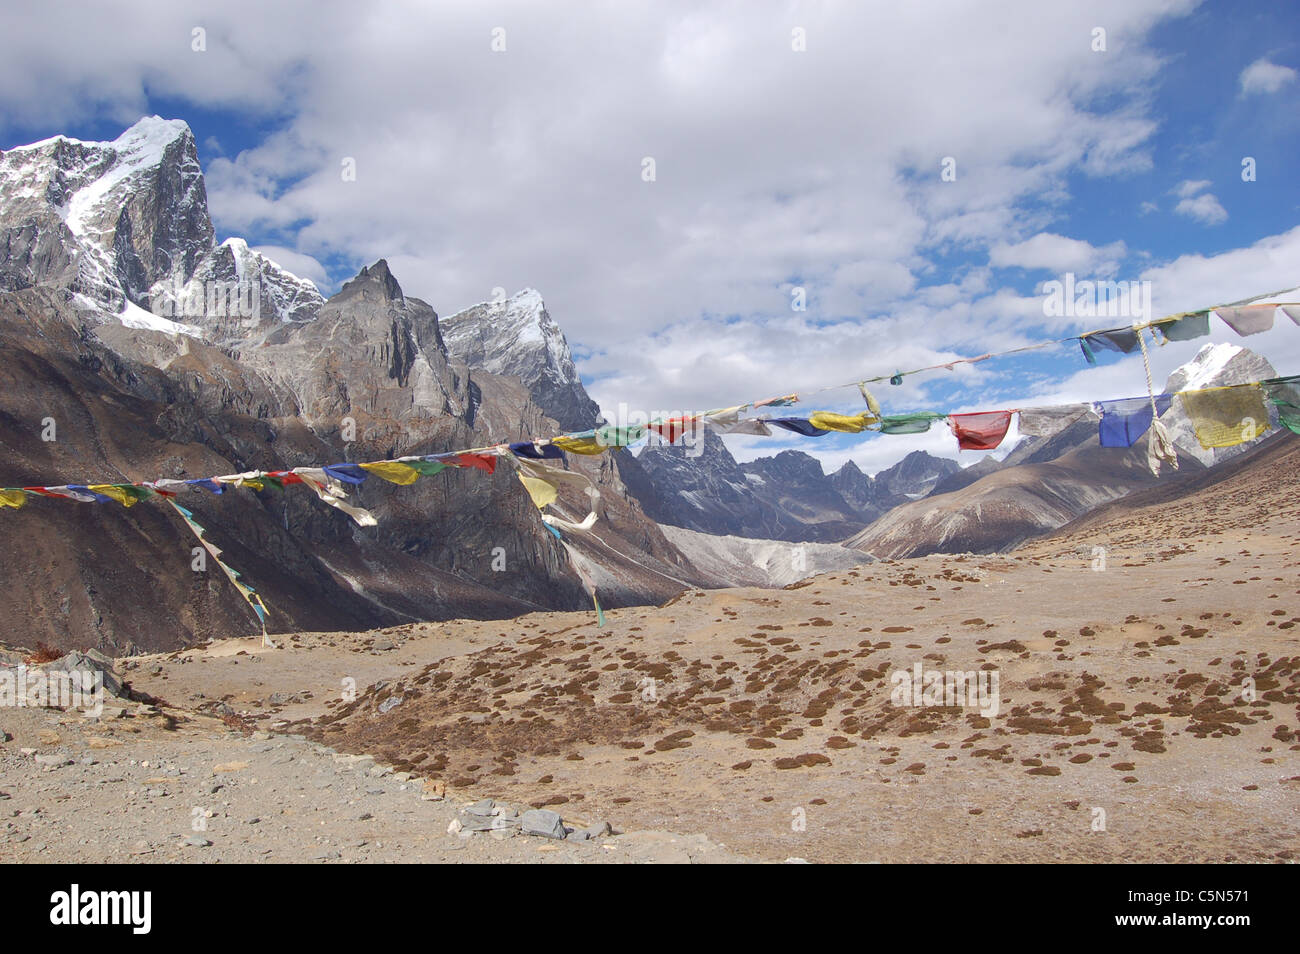 Himalayas - on the way to Everest Base Camp - Stock Image